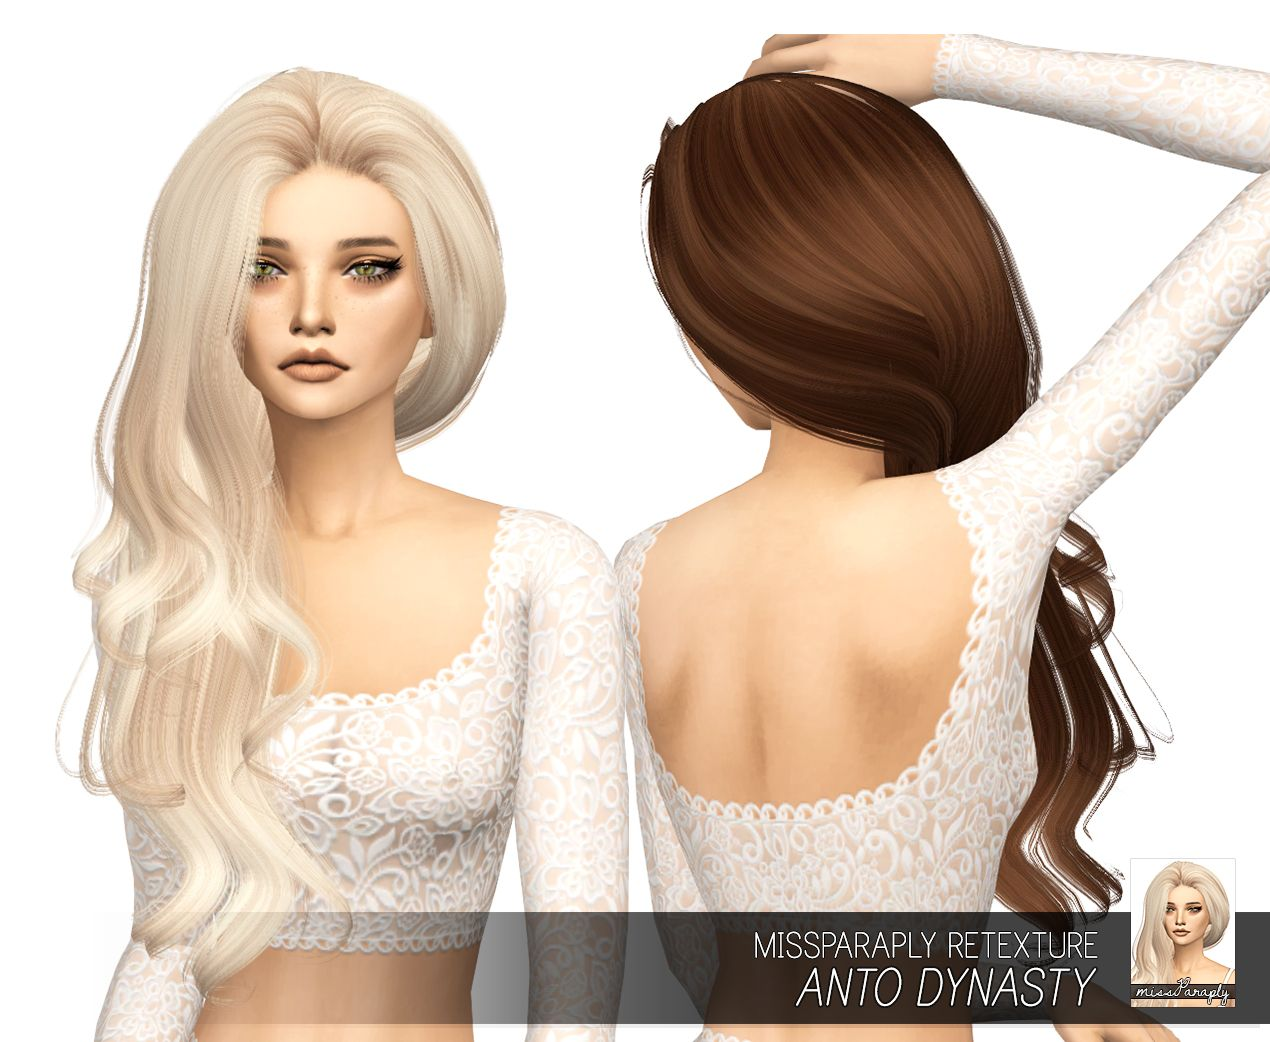 The sims 4 hairstyles cc - Miss Paraply Anto S Dynasty Hair Retextured Sims 4 Hairs Http